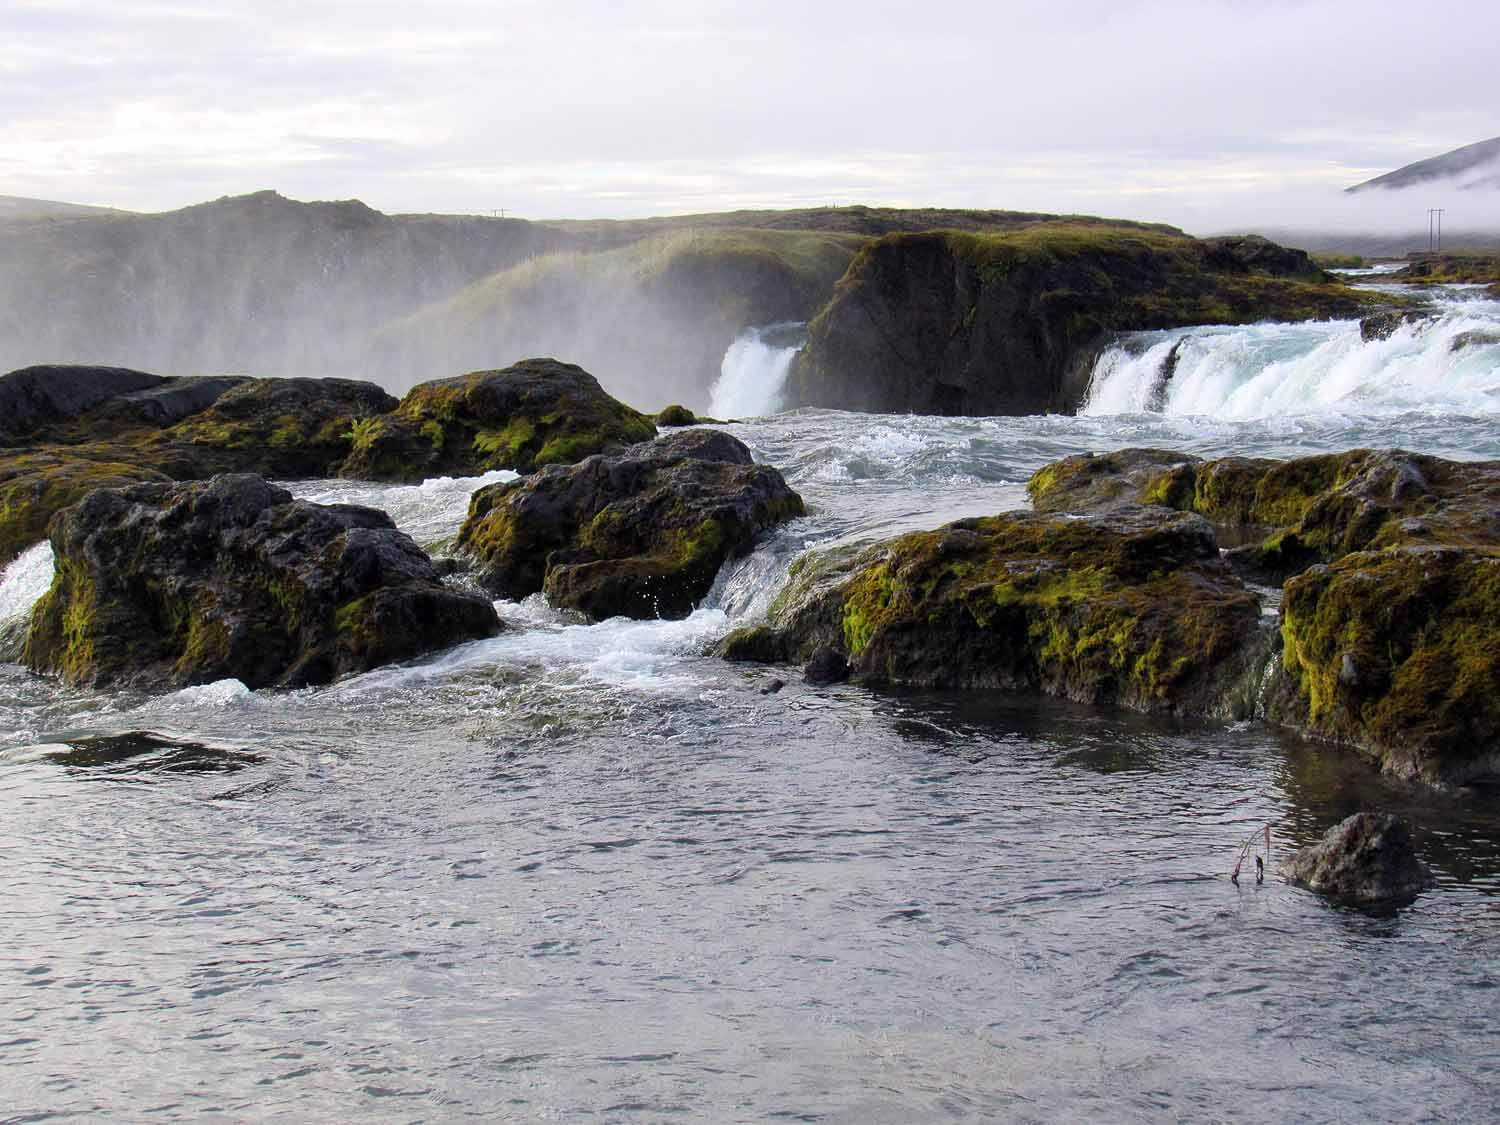 iceland-godafoss-waterfall-river-mossy-rocks.JPG